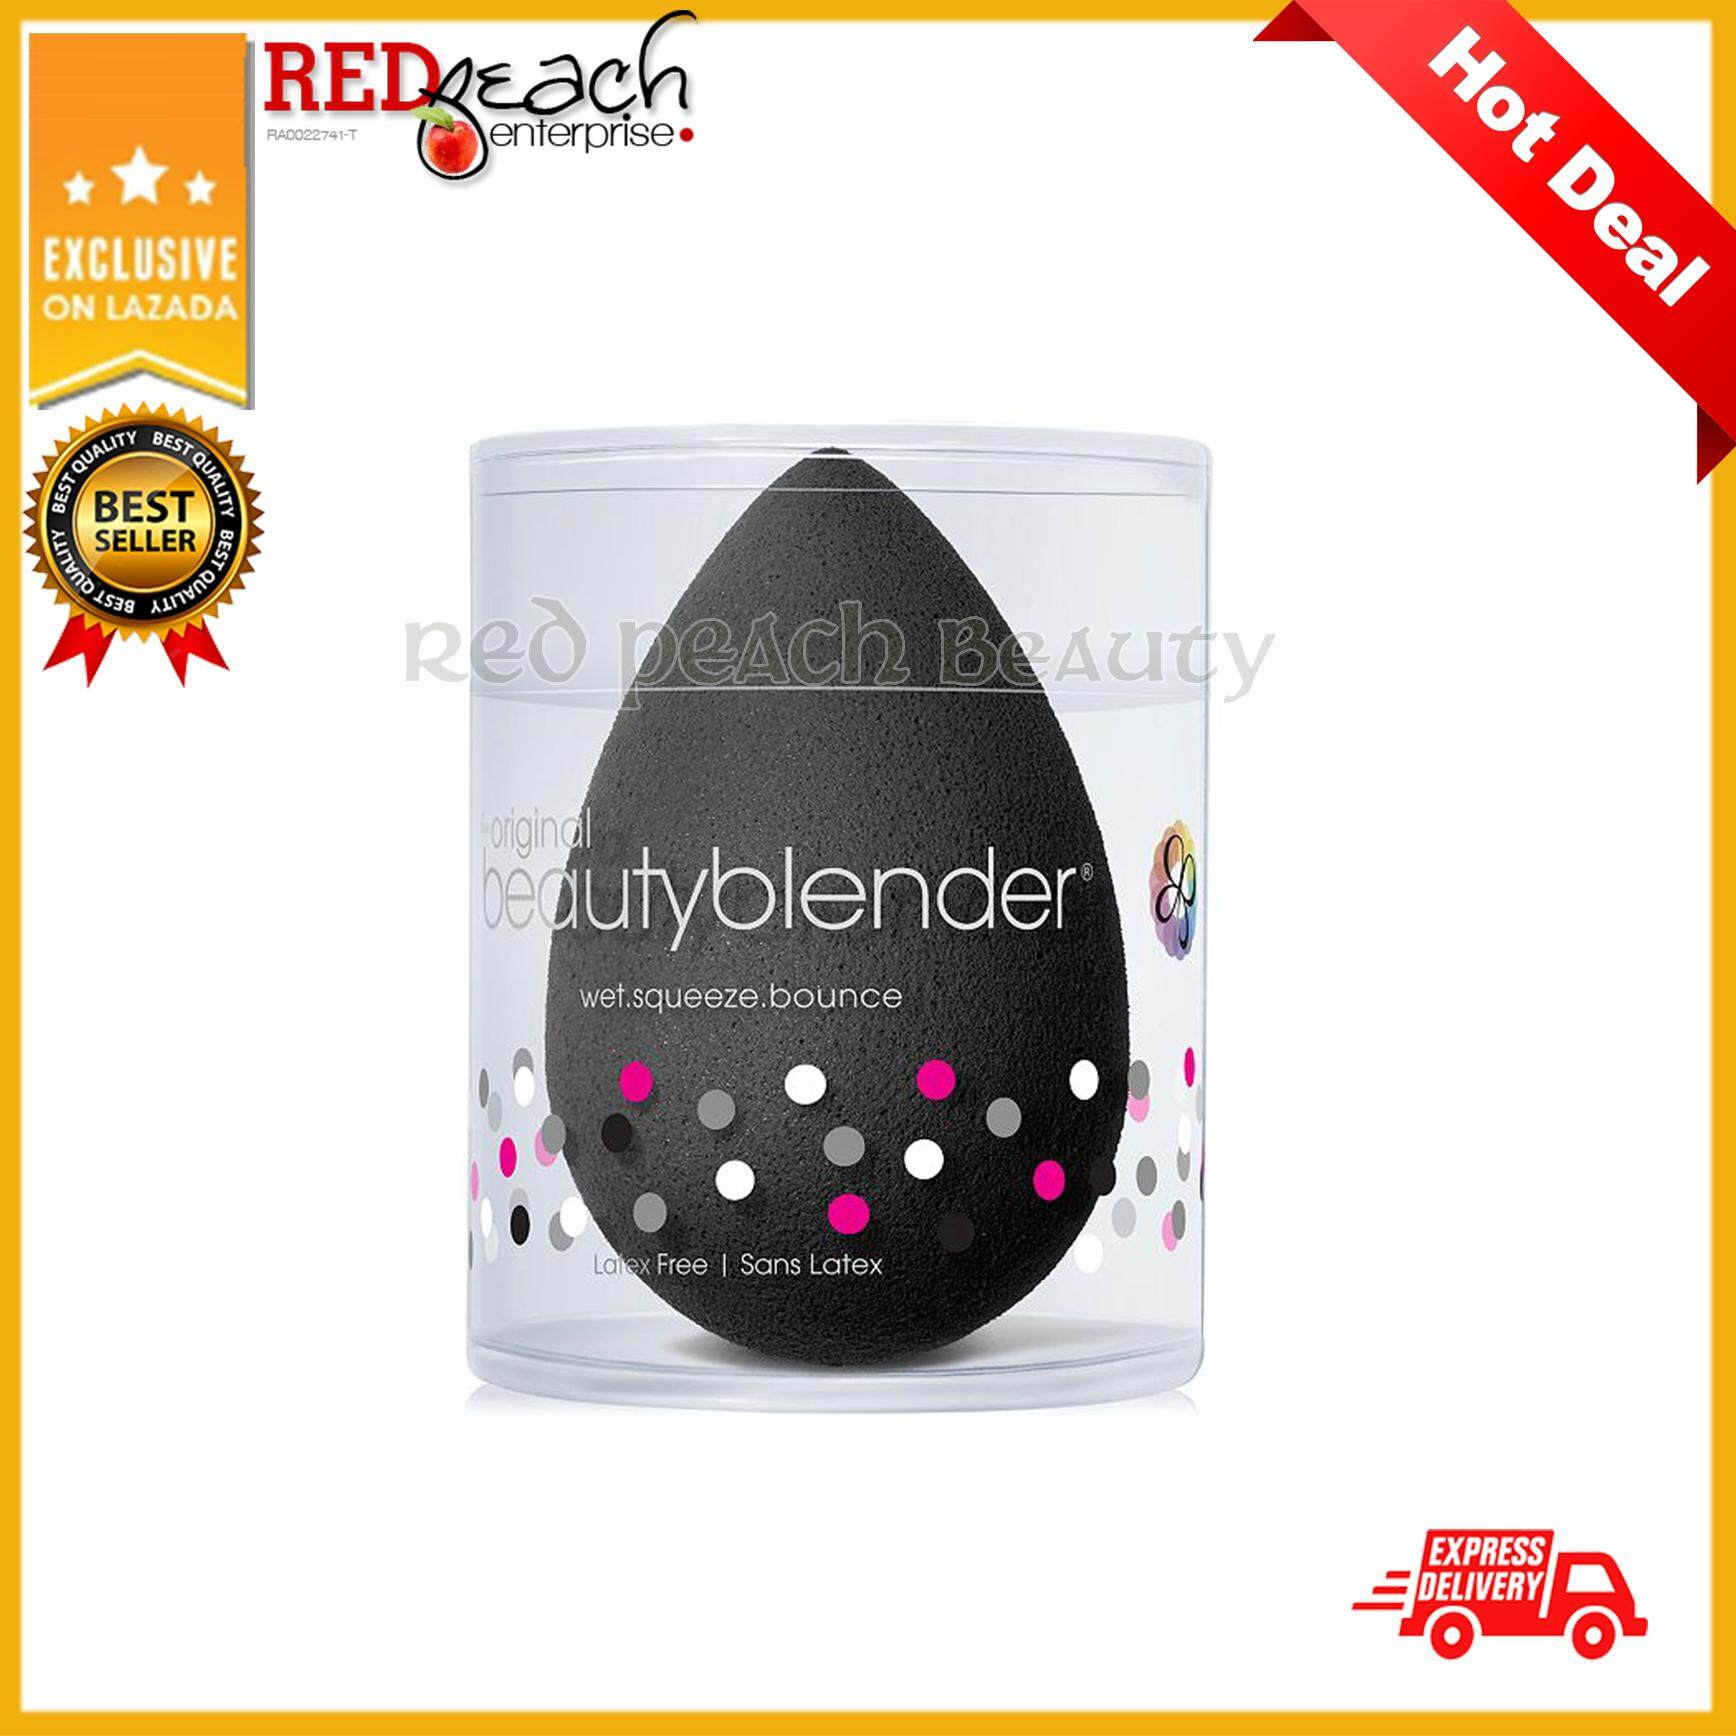 Jbs Spon Make Up Beauty Blender Wajah 2 Pcs Daftar Harga New York Rak Spons Sponge Puff 3 Black Hot Sale